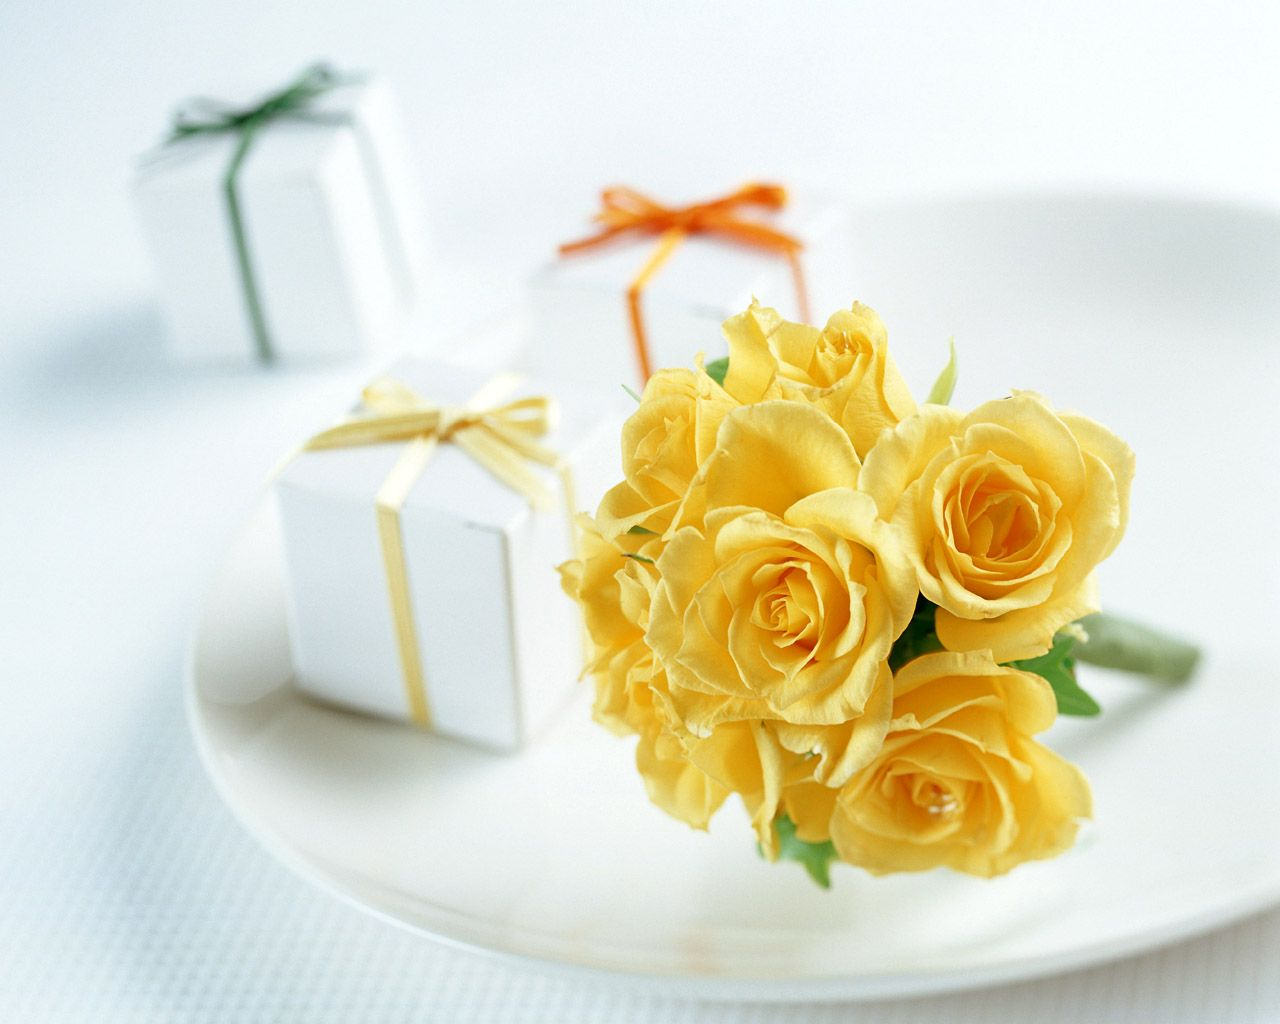 Hd wallpaper yellow rose - Yellow Pictures Yellow Roses Wallpapers Hd Wallpapers